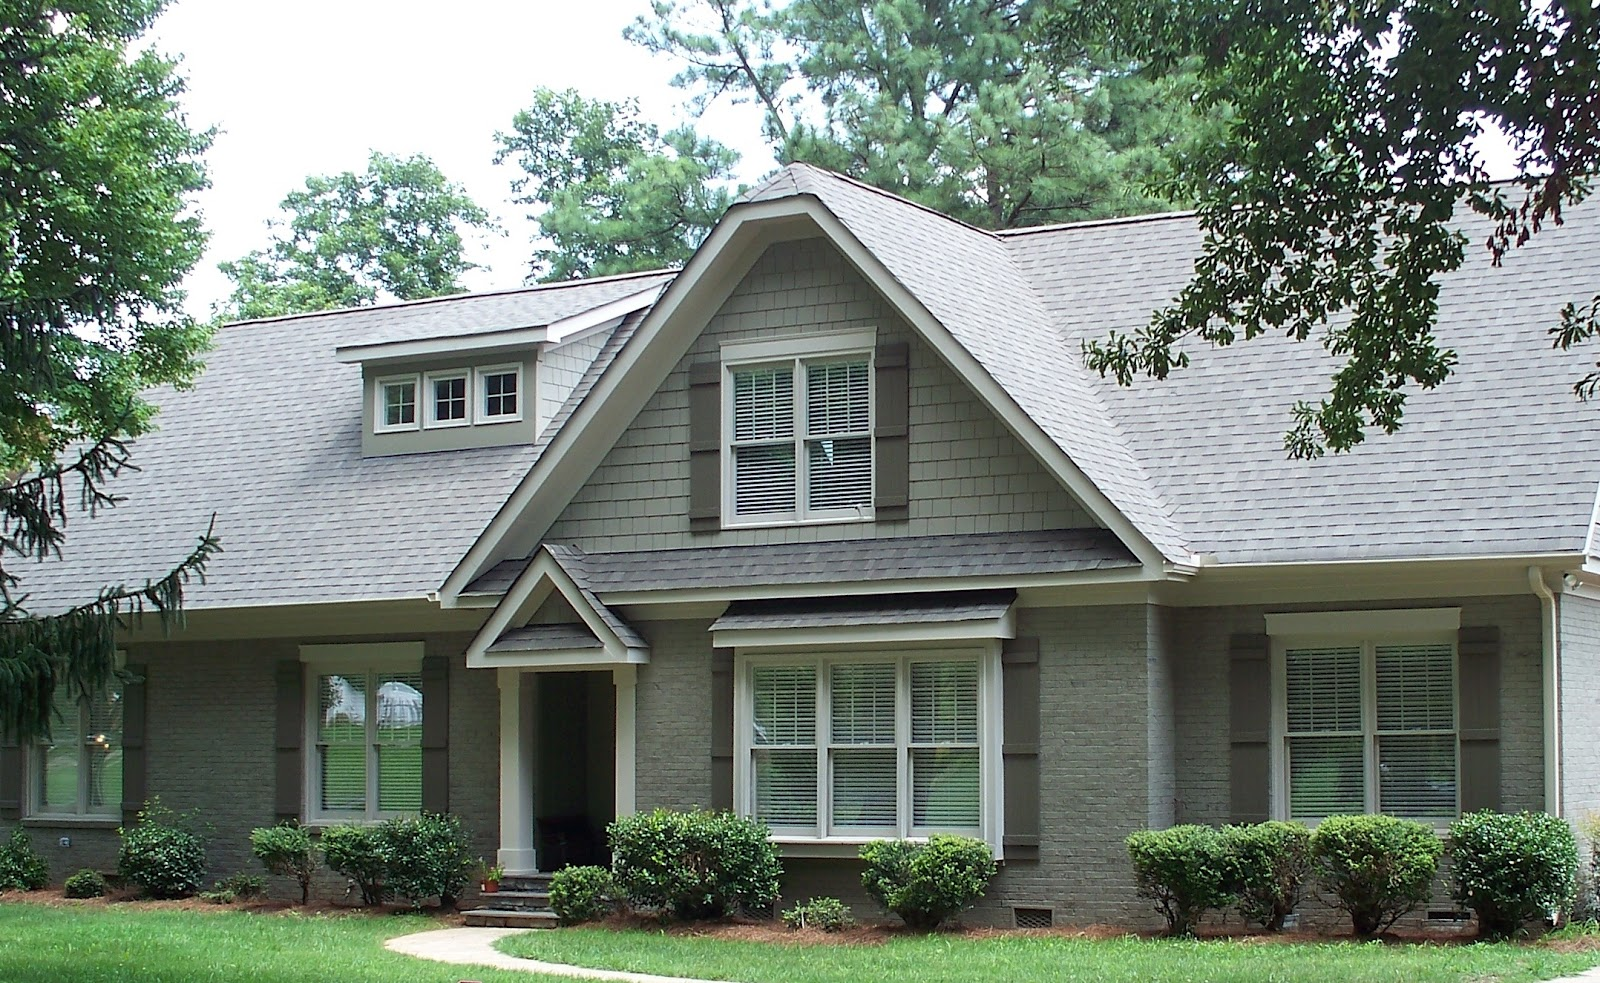 Transform Your home's exterior affordably with custom